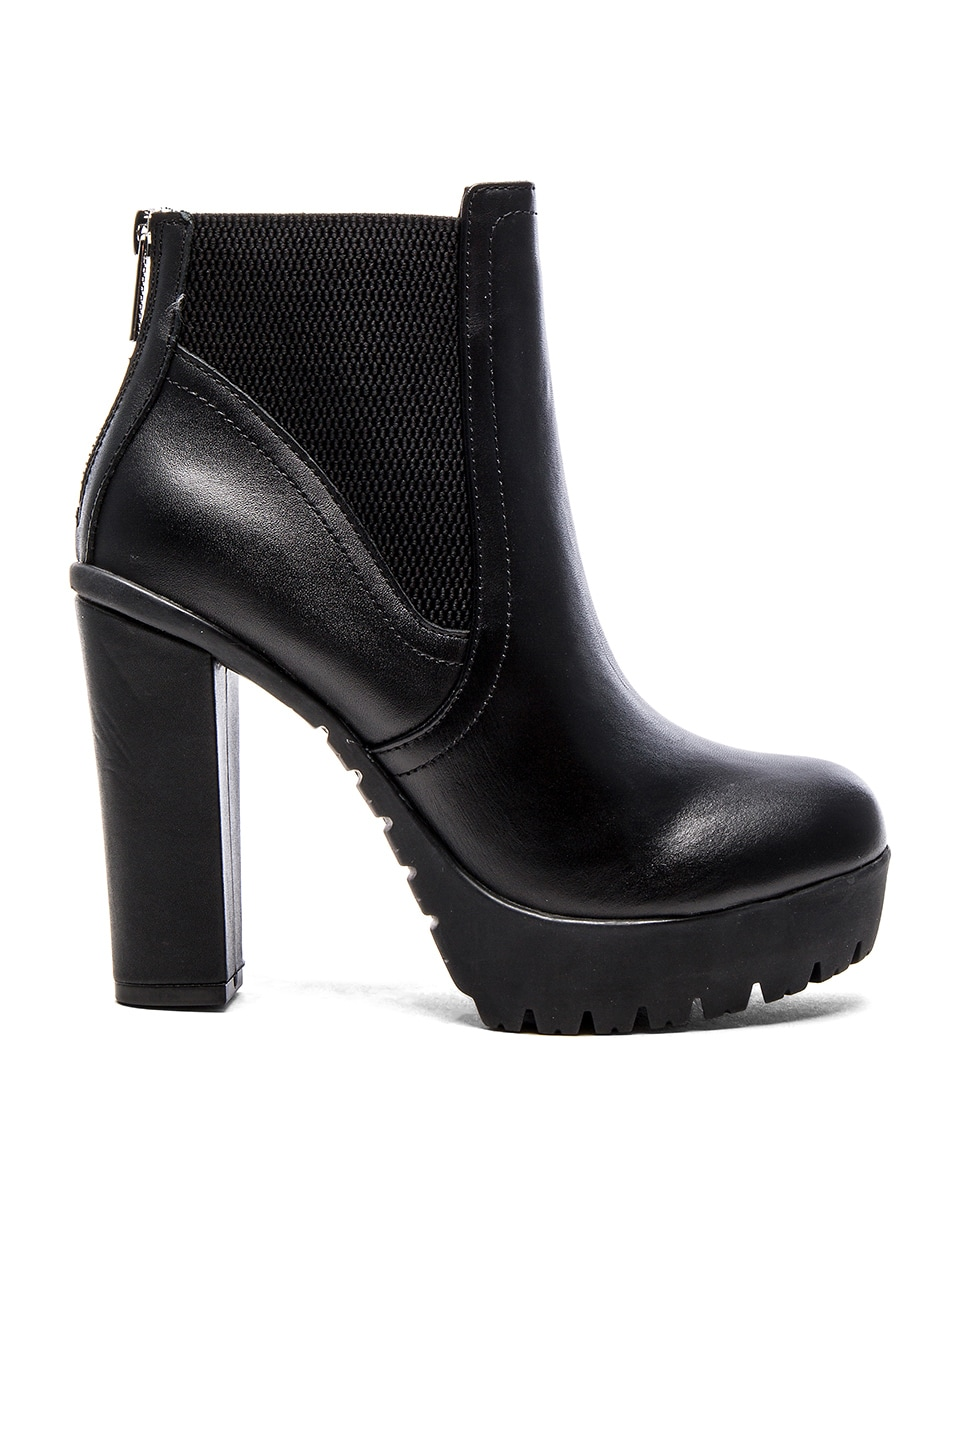 Steve Madden Amandaa Bootie in Black Leather